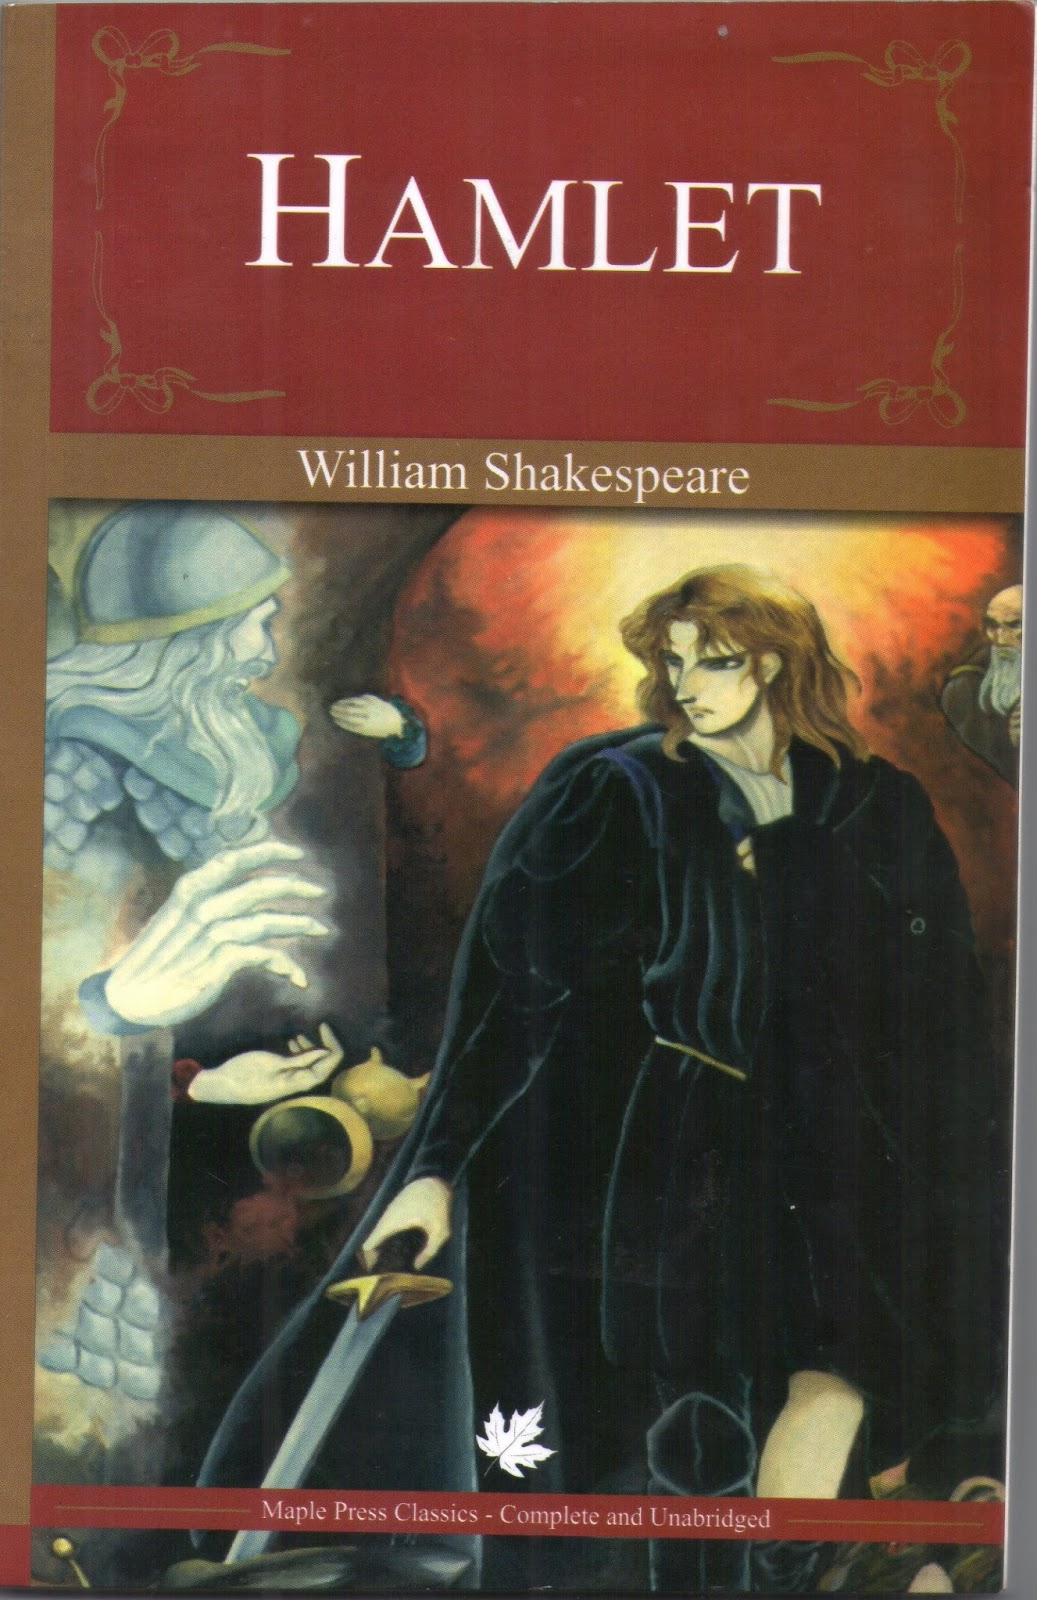 an analysis of prince hamlet intellectual qualities in hamlet by william shakespeare The tragedy of hamlet, prince of denmark, often shortened to hamlet (/ ˈ h æ m l ɪ t /), is a tragedy written by william shakespeare at an uncertain date between 1599 and 1602 set in denmark , the play dramatises the revenge prince hamlet is called to wreak upon his uncle, claudius , by the ghost of hamlet's father, king hamlet.